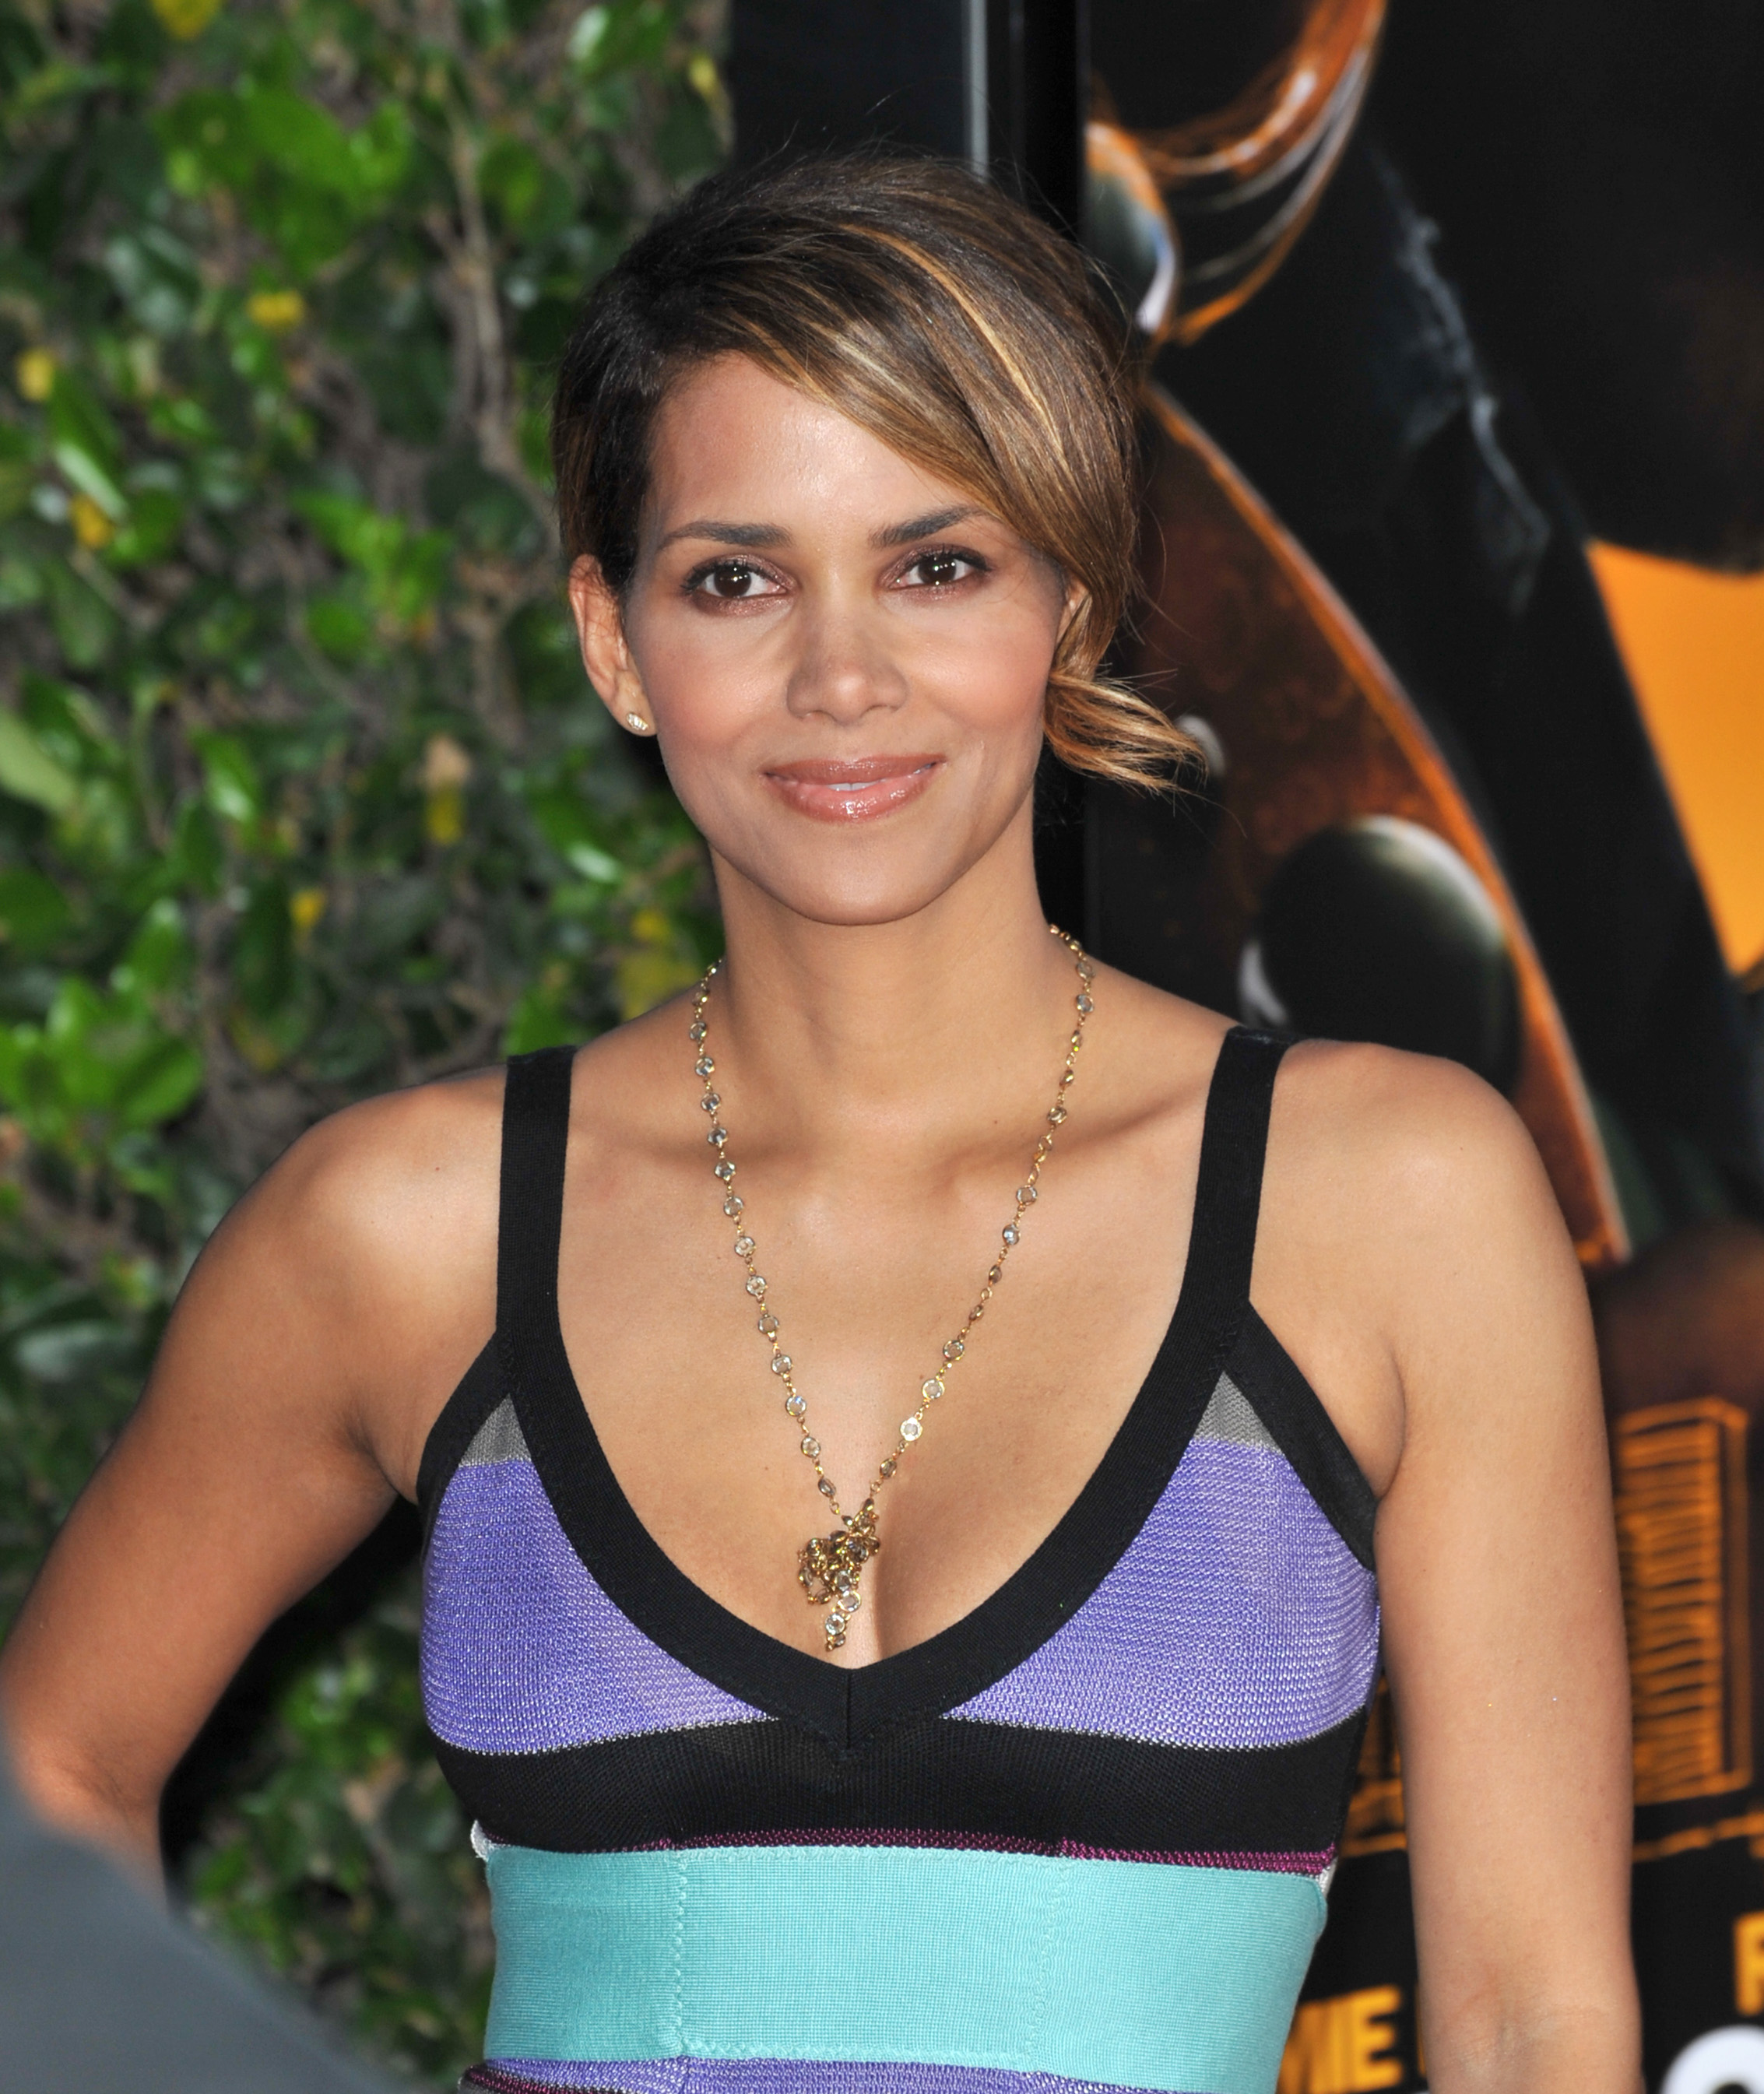 66468_Halle_Berry_The_Soloist_premiere_in_Los_Angeles_86_122_392lo.jpg